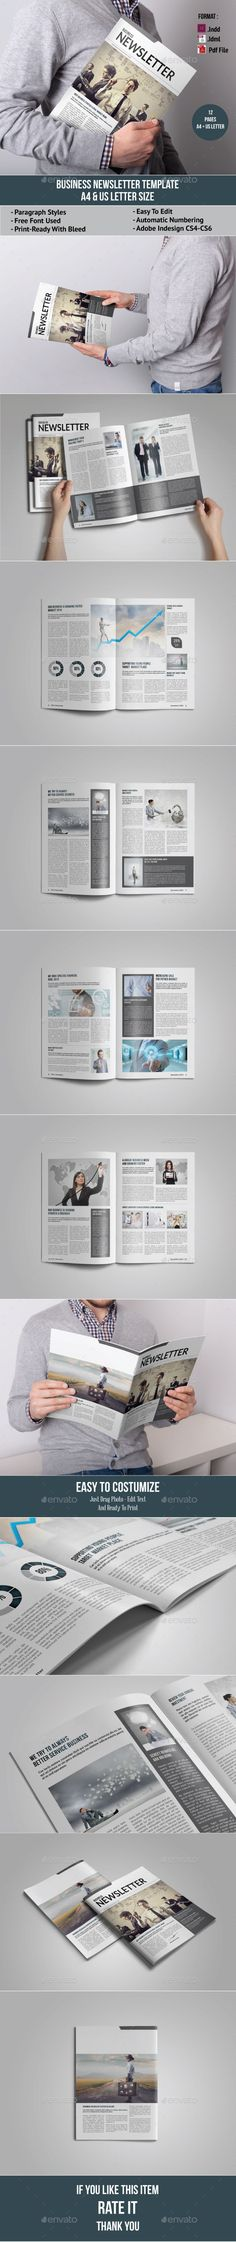 Page Newspaper Indesign V  Newspaper Print Templates And